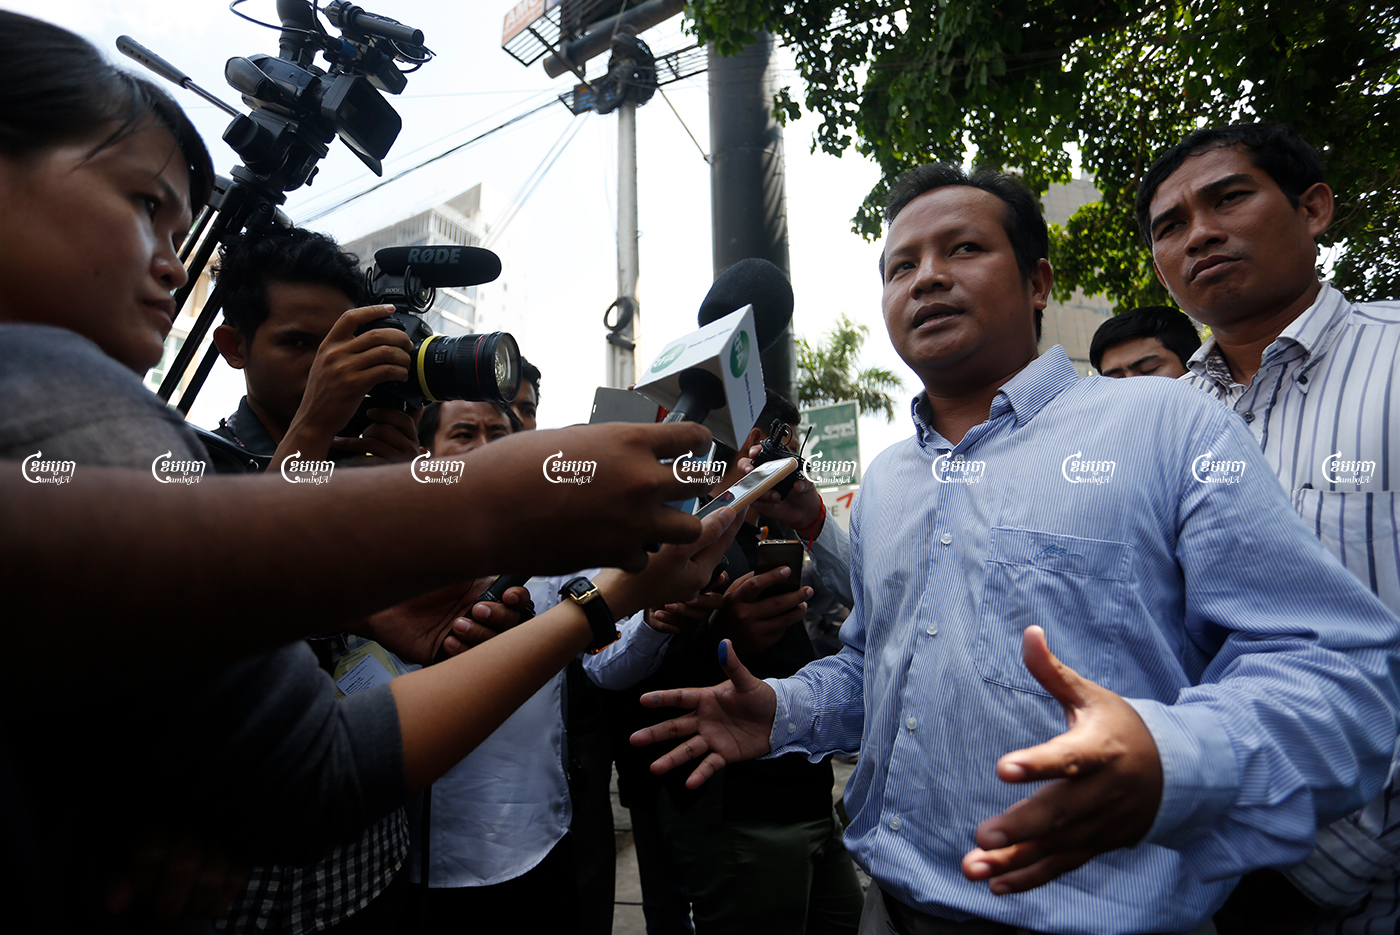 Union leader Pav Sina speaks to media in front of the Phnom Penh Municipal Court, Picture taken on April 21, 2016. CamboJA/ Panha Chhorpoan